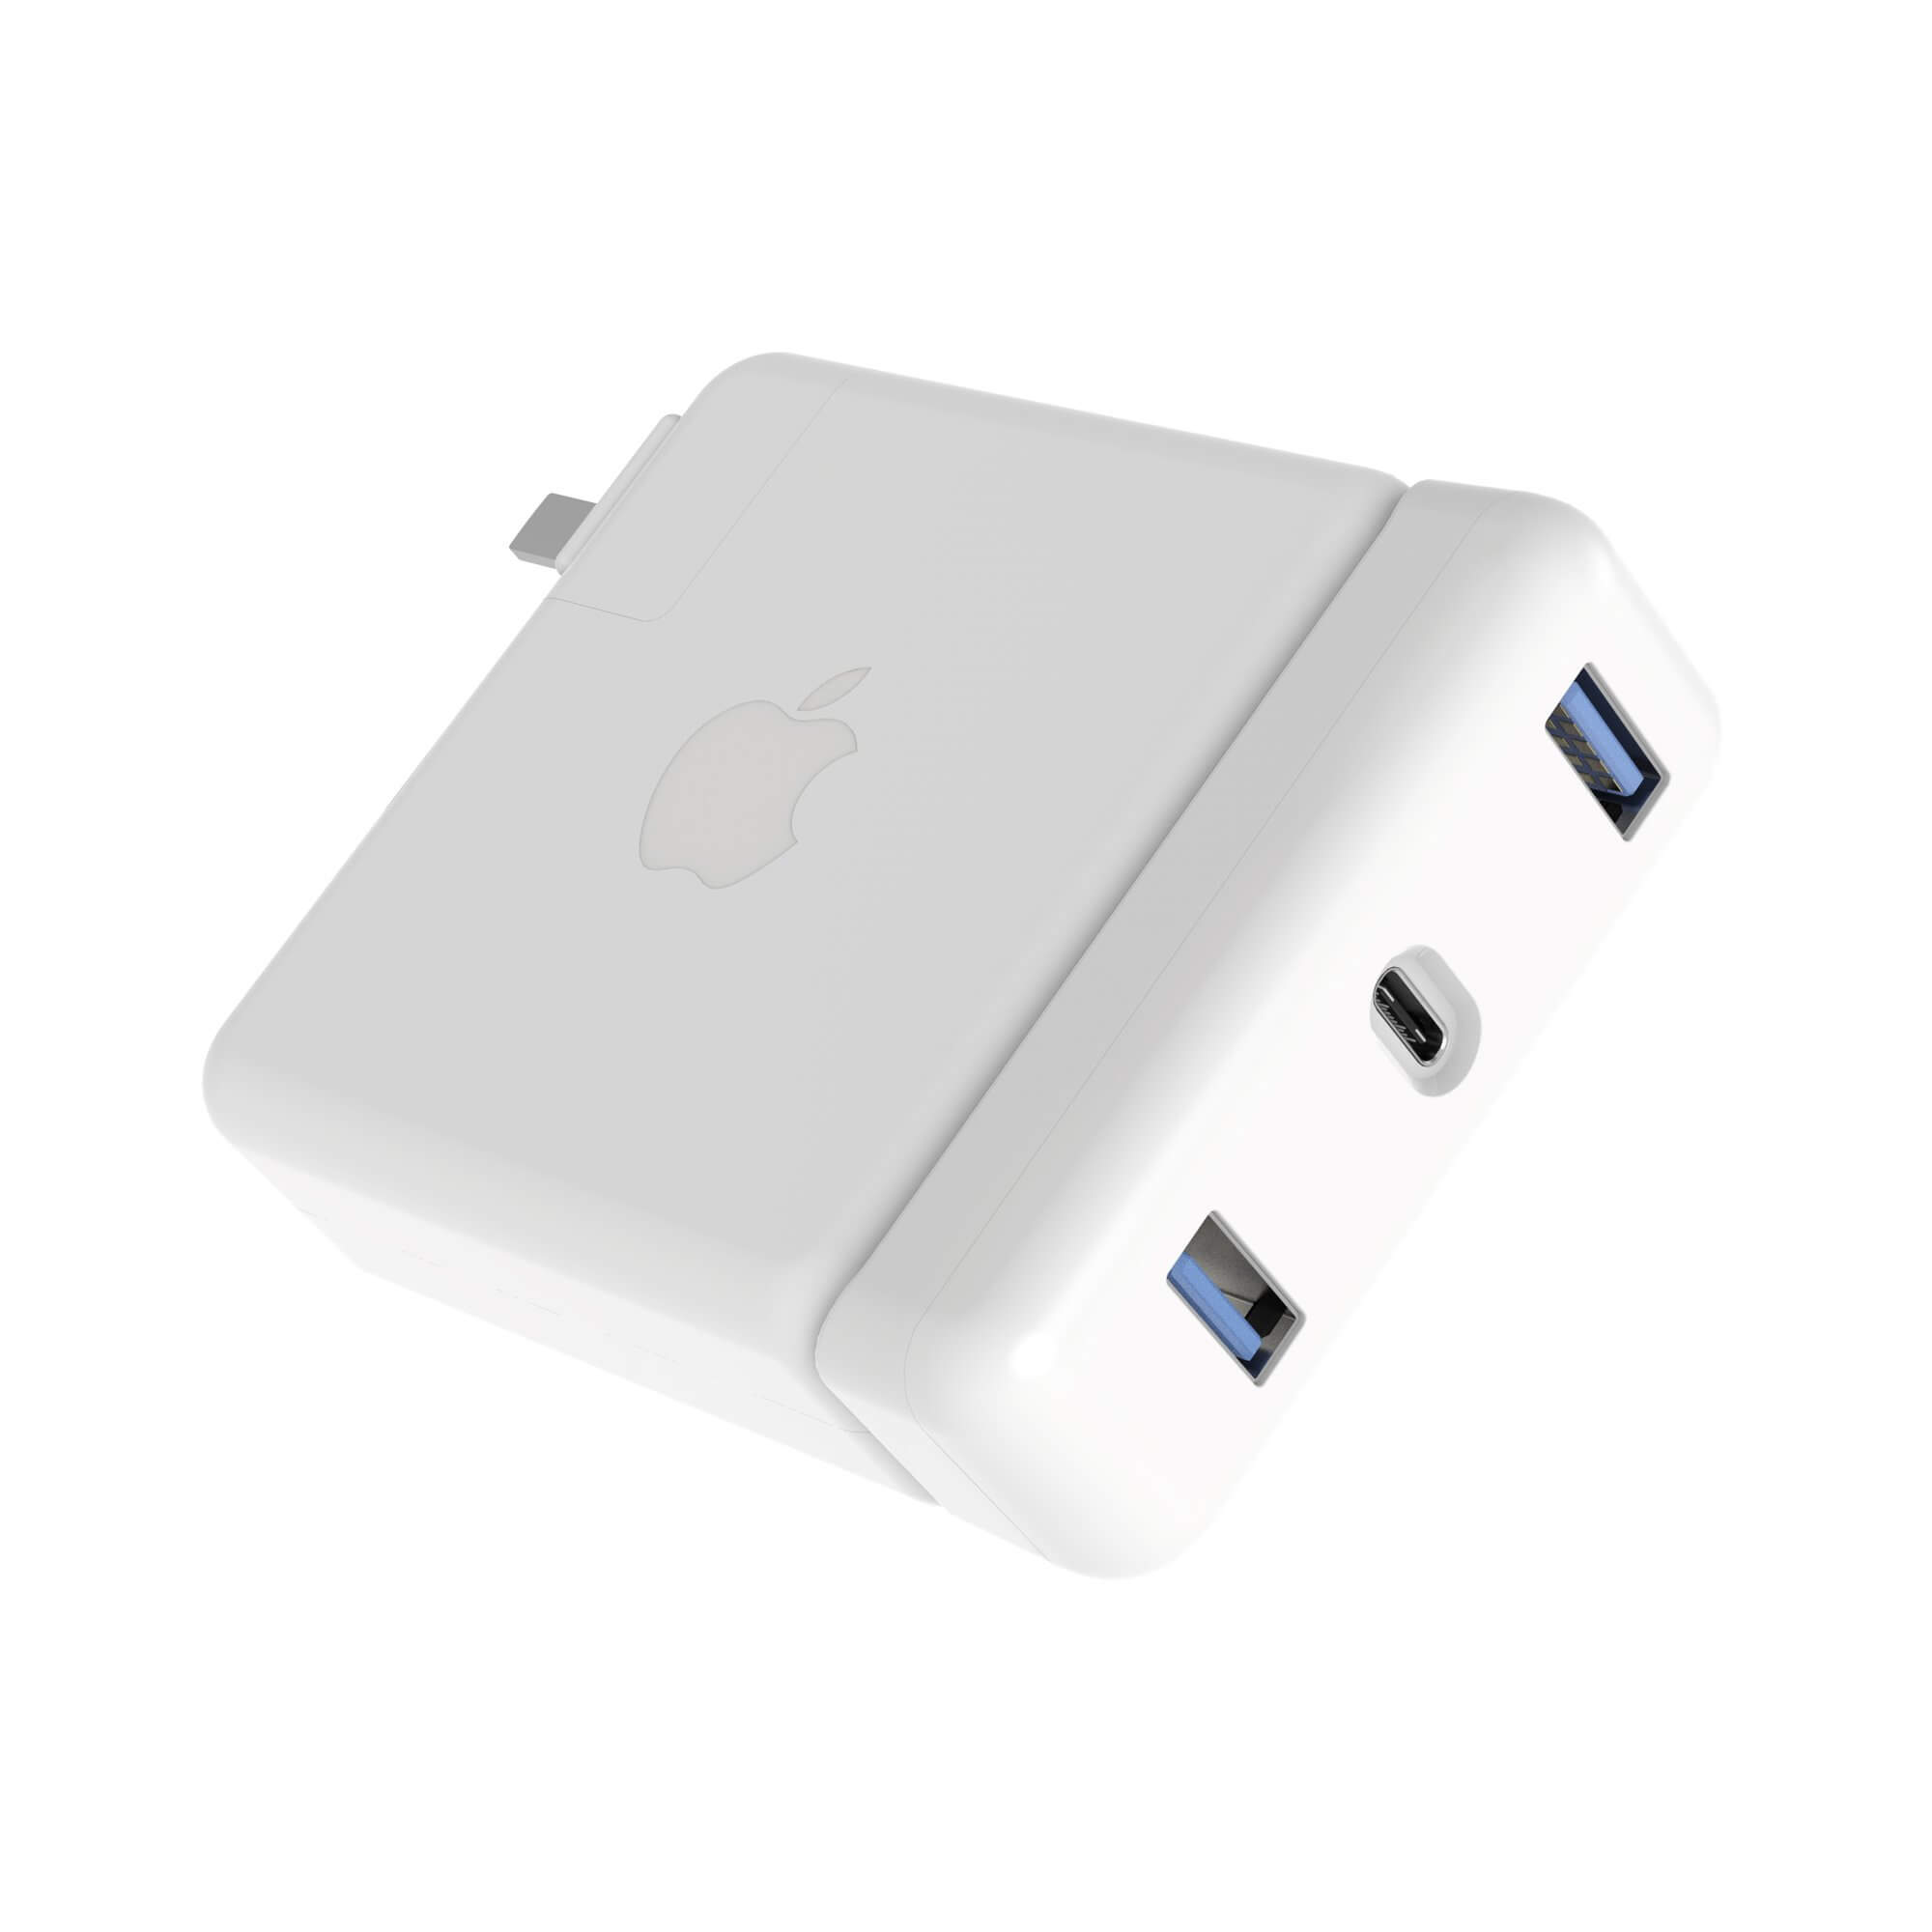 HyperDrive USB-C Hub 61W Power Adapter - USB-C хъб с два USB изхода за Apple 61W USB-C Power Adapter (бял)